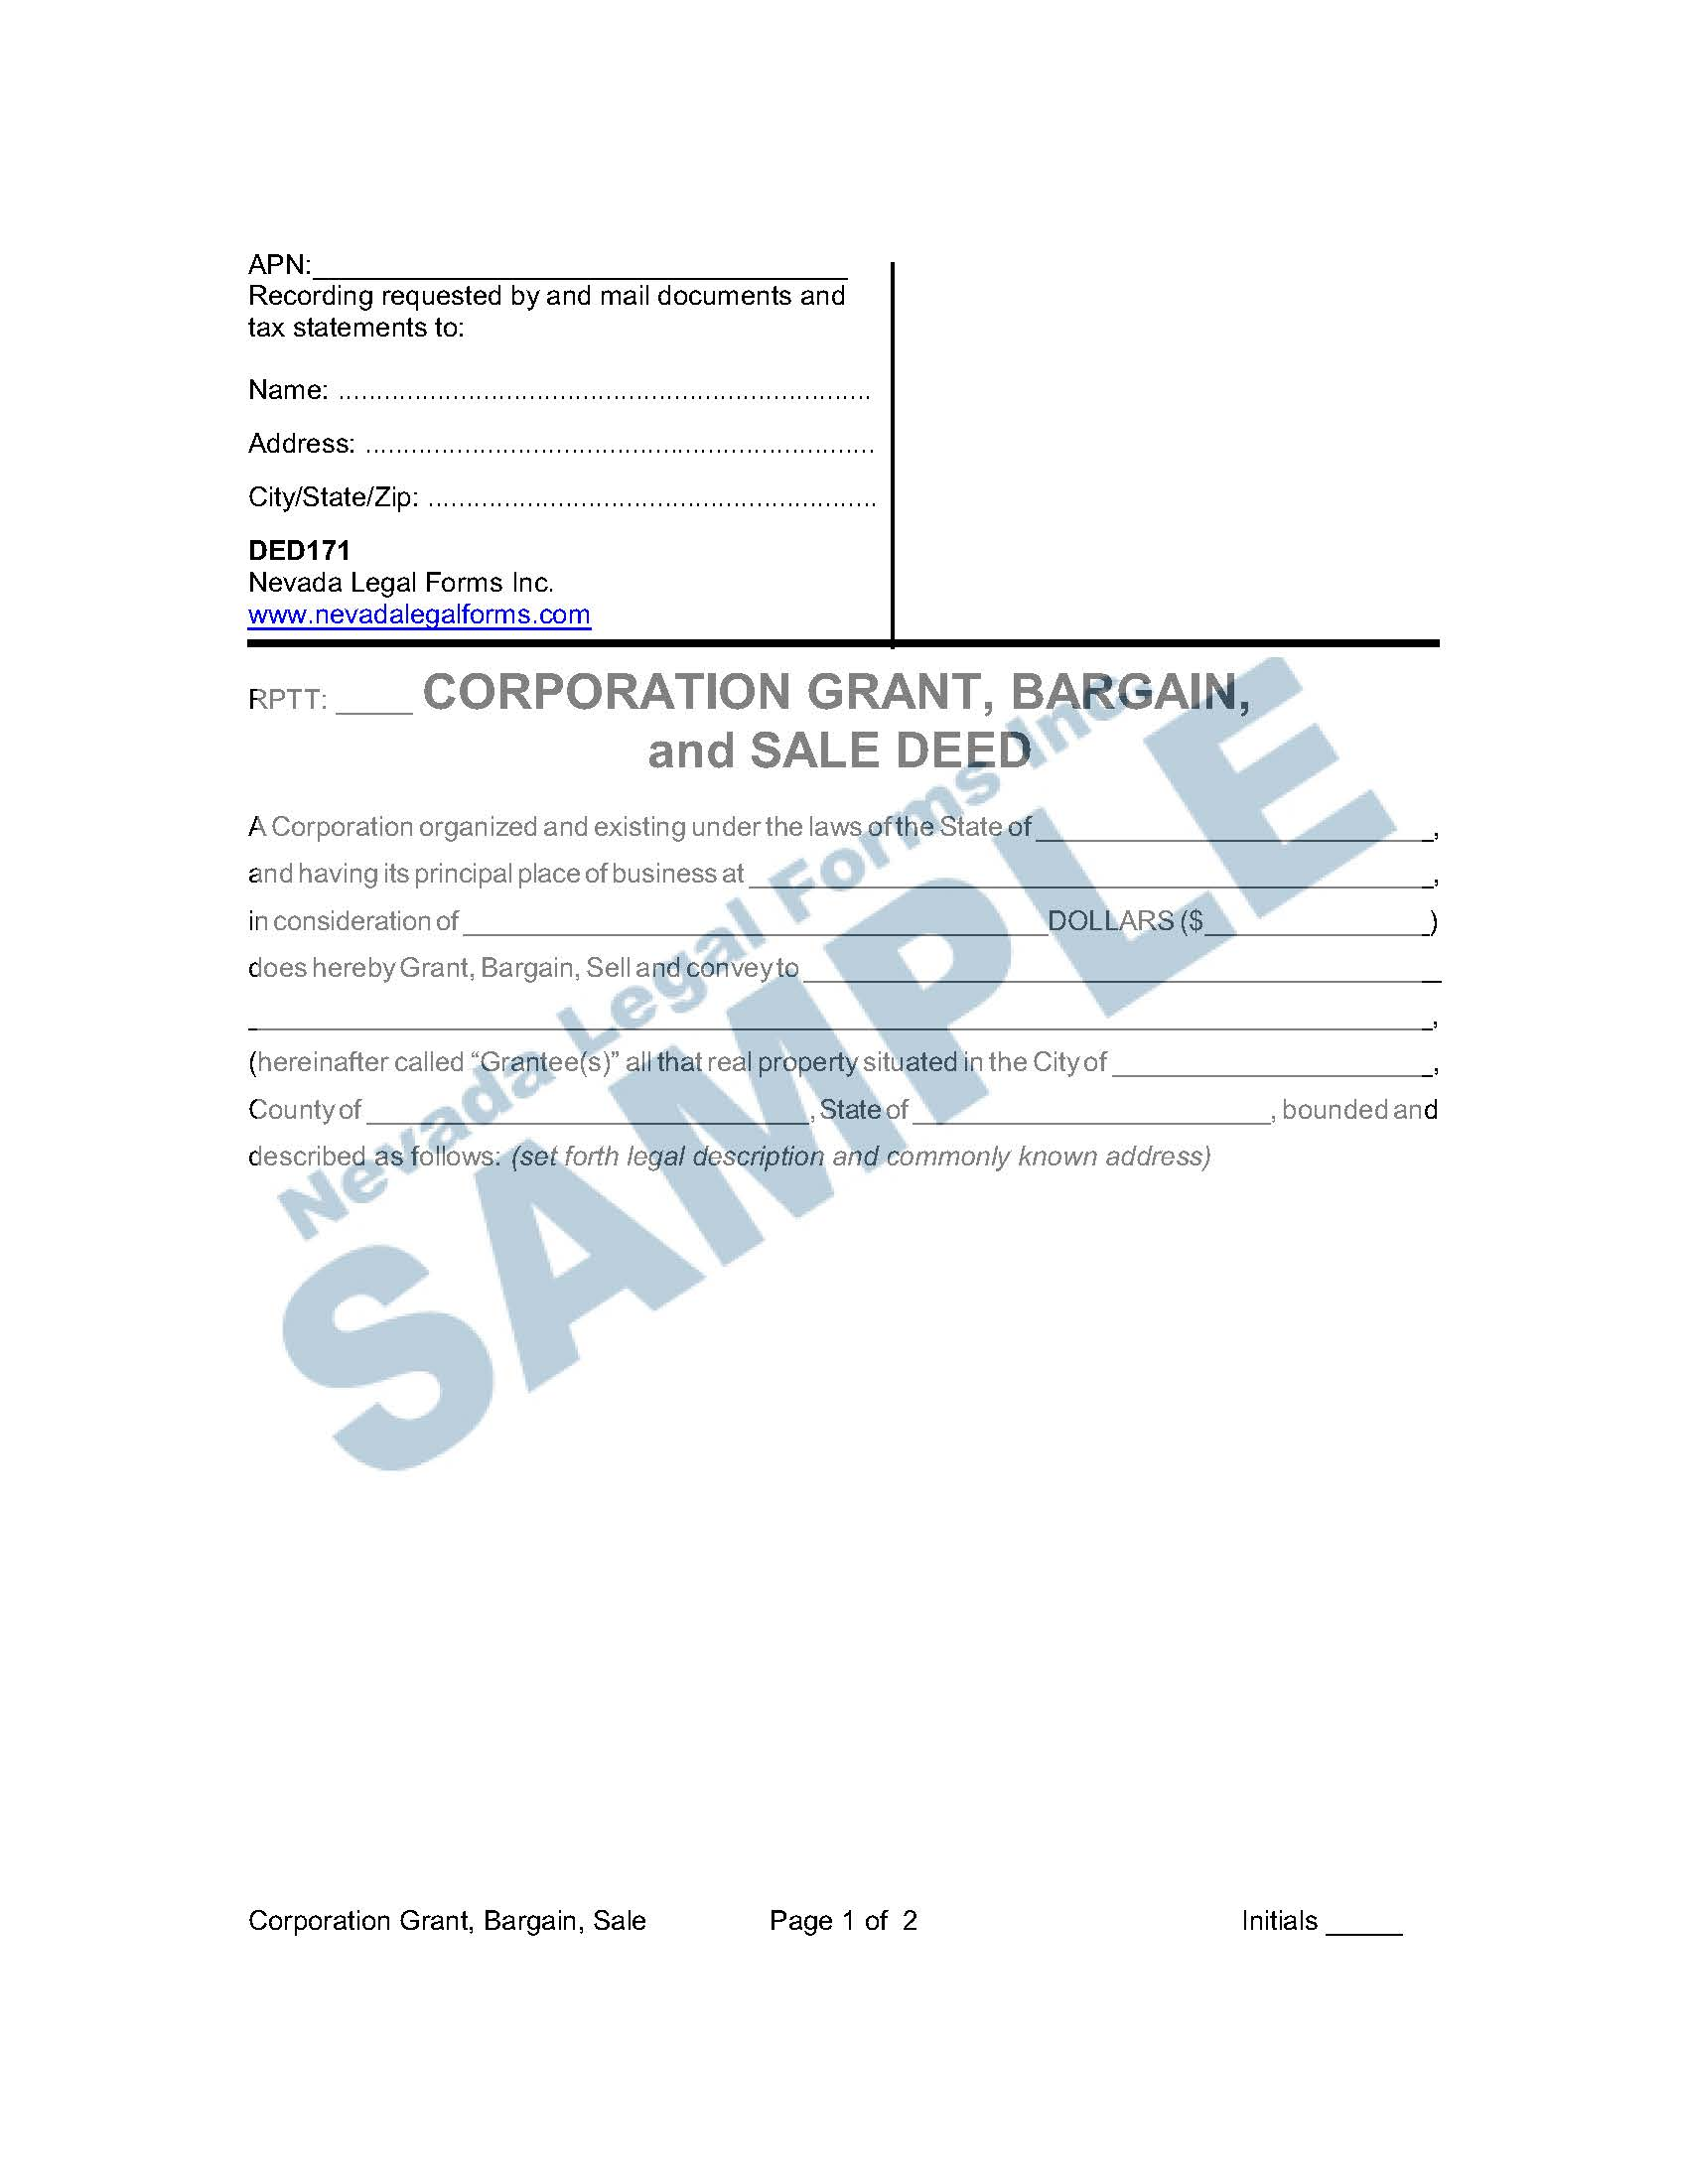 Corporation Grant Bargain And Sale Deed